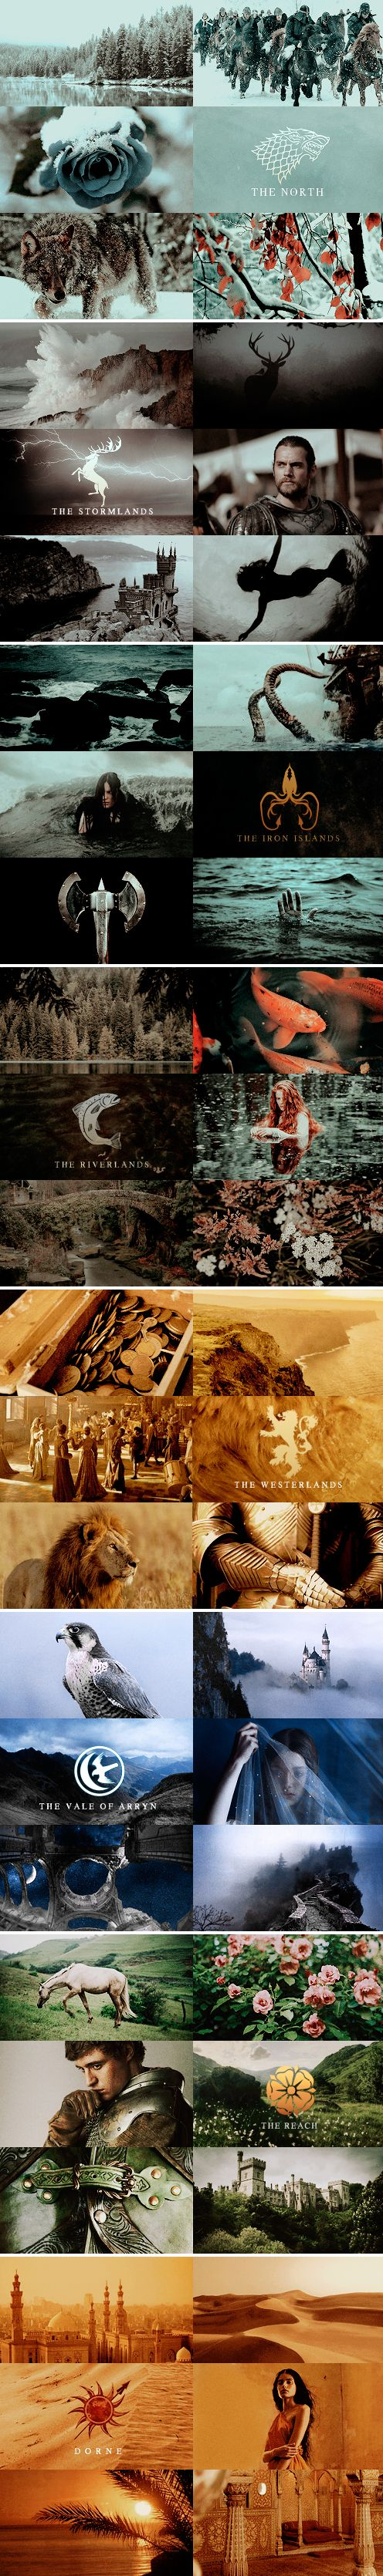 a song of ice and fire aesthetics:  W E S T E R O S